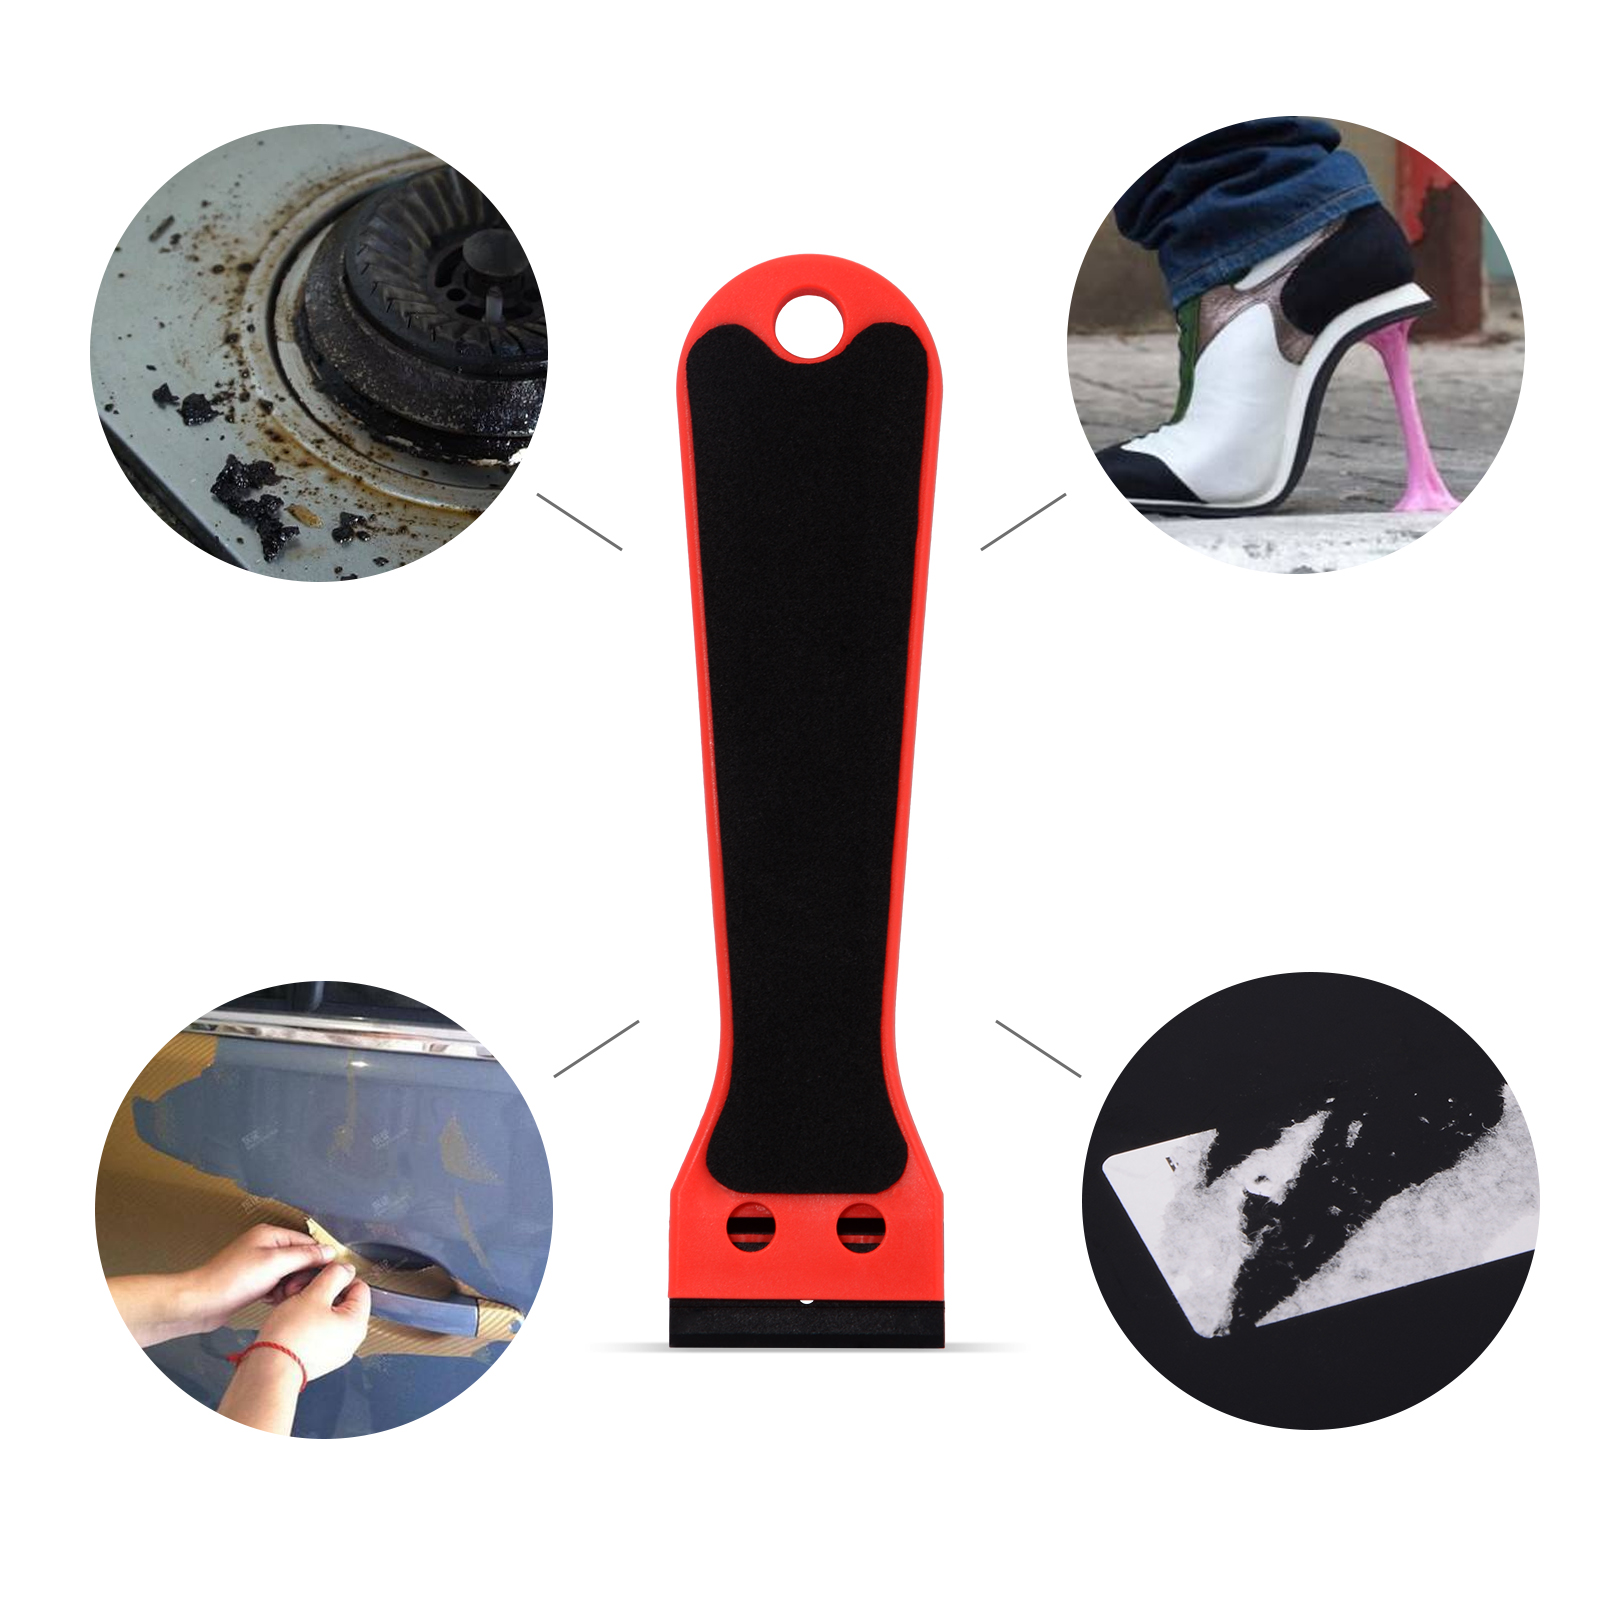 FOSHIO Vinyl Wrap Car Sticker Remover Razor Scraper for Oven Ceramic Window Glass Cleaning Carbon Fiber Wrapping Tool Squeegee in Scraper from Automobiles Motorcycles